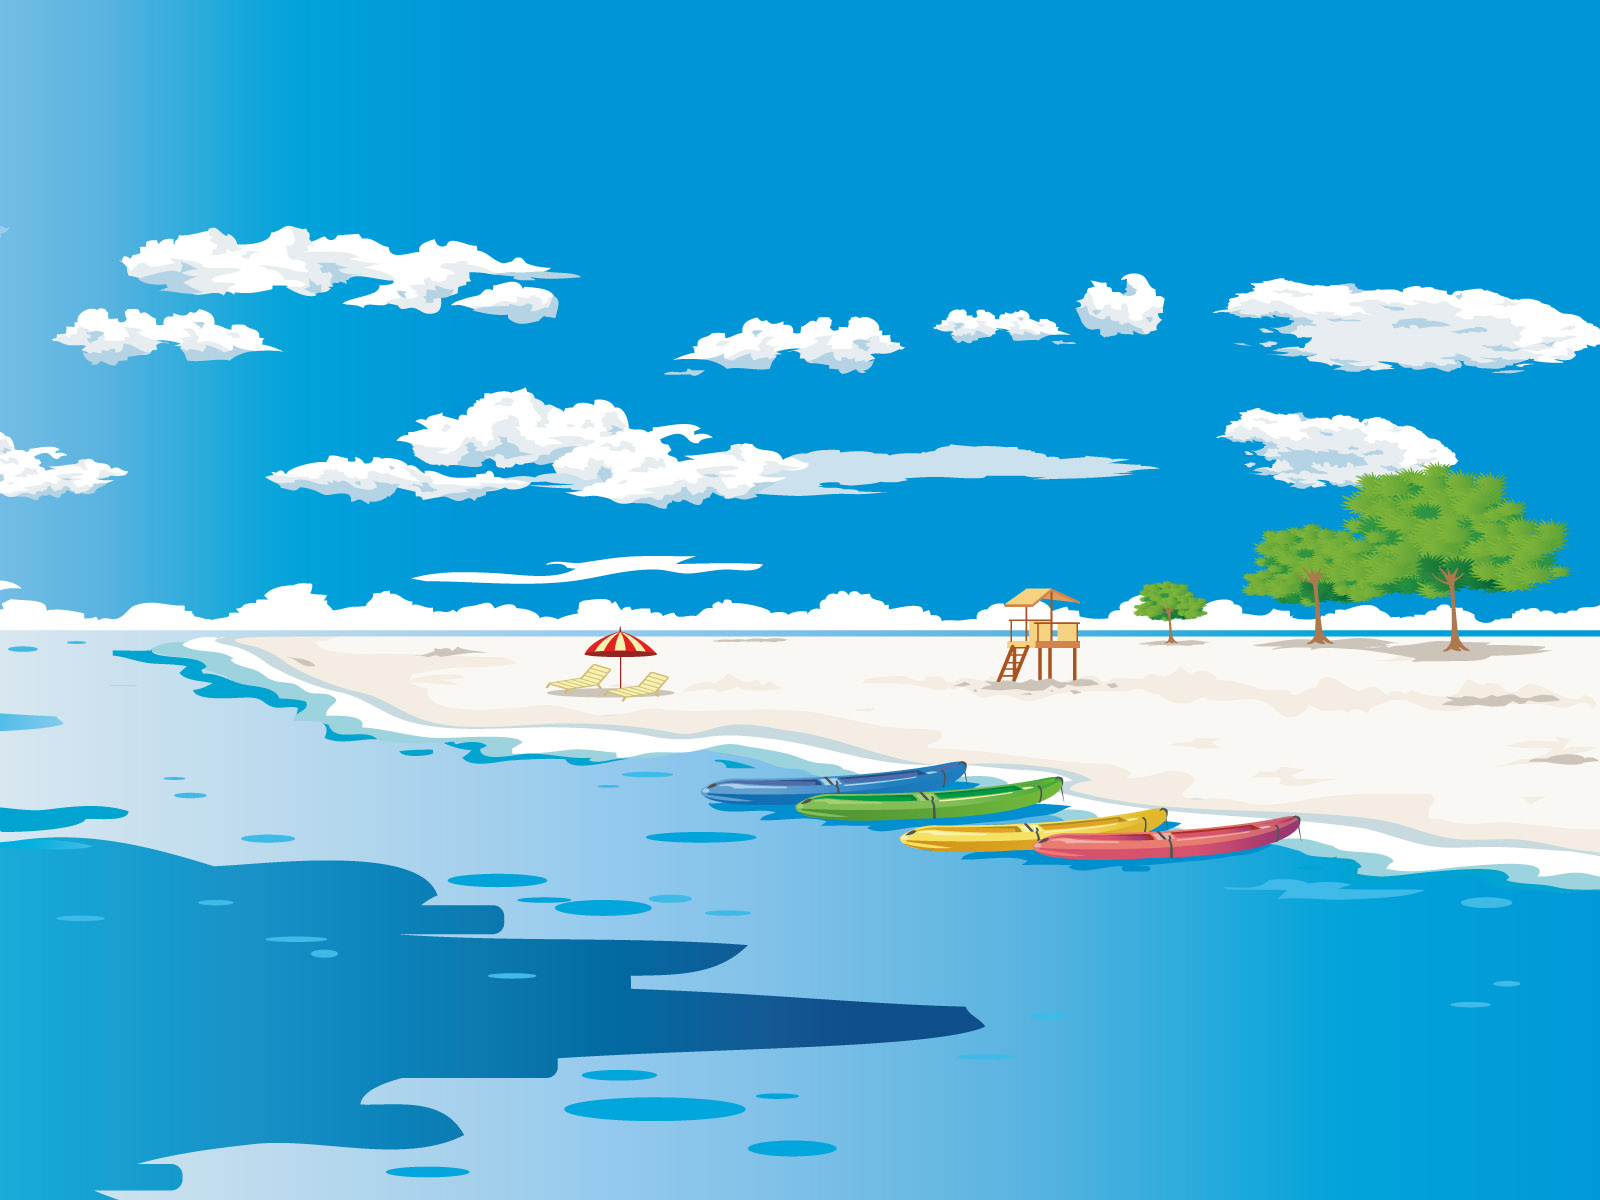 Cartoon landscape wallpaper 21456